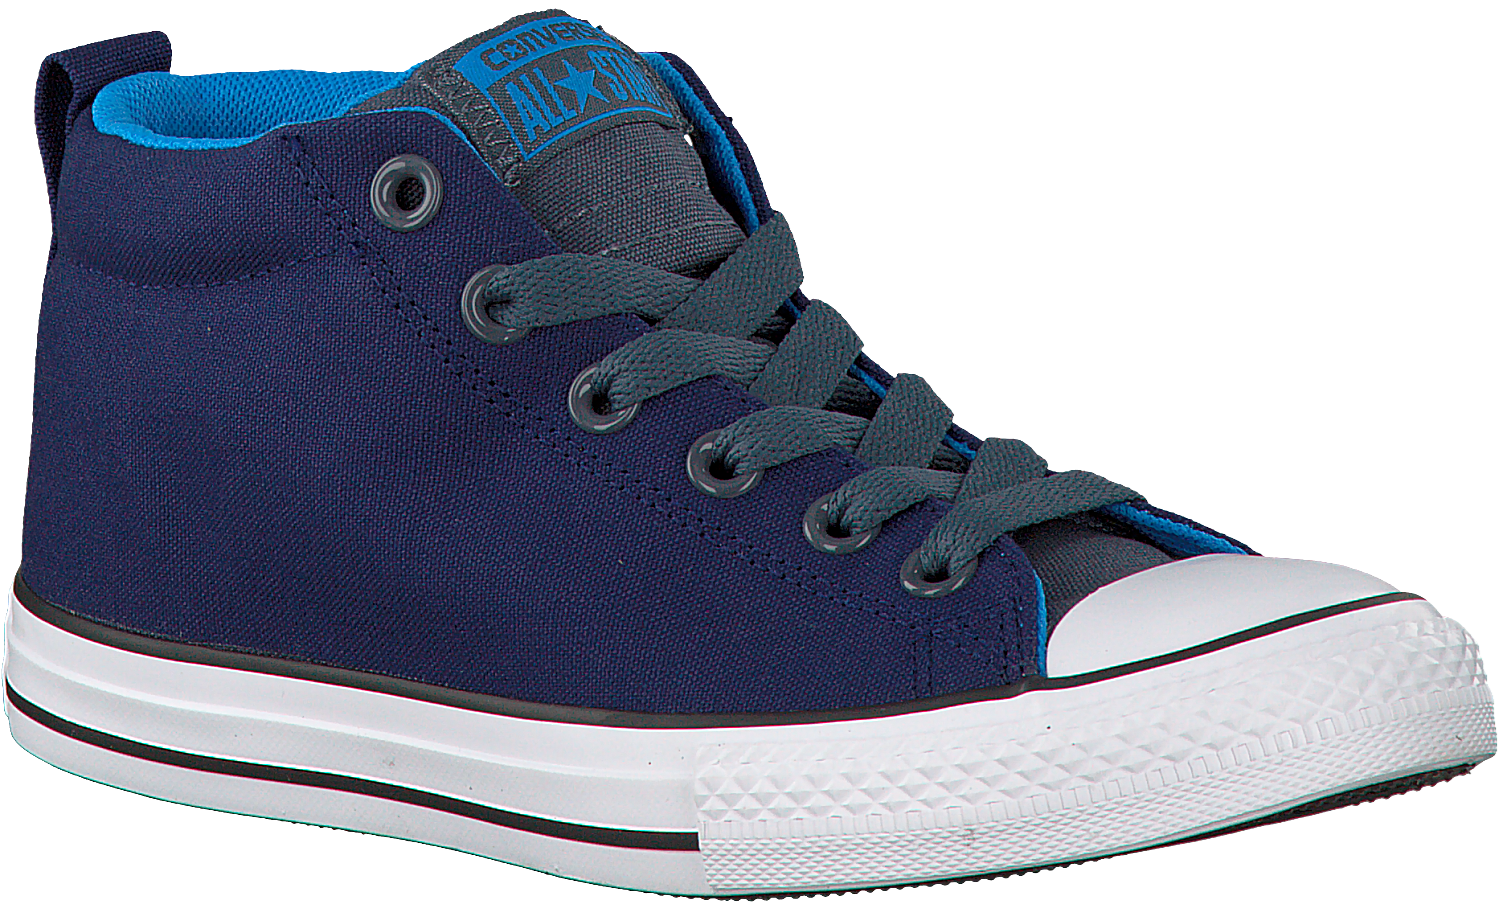 e9c30d28d18 Blauwe CONVERSE Sneakers CTAS STREET MID. CONVERSE. -30%. Previous